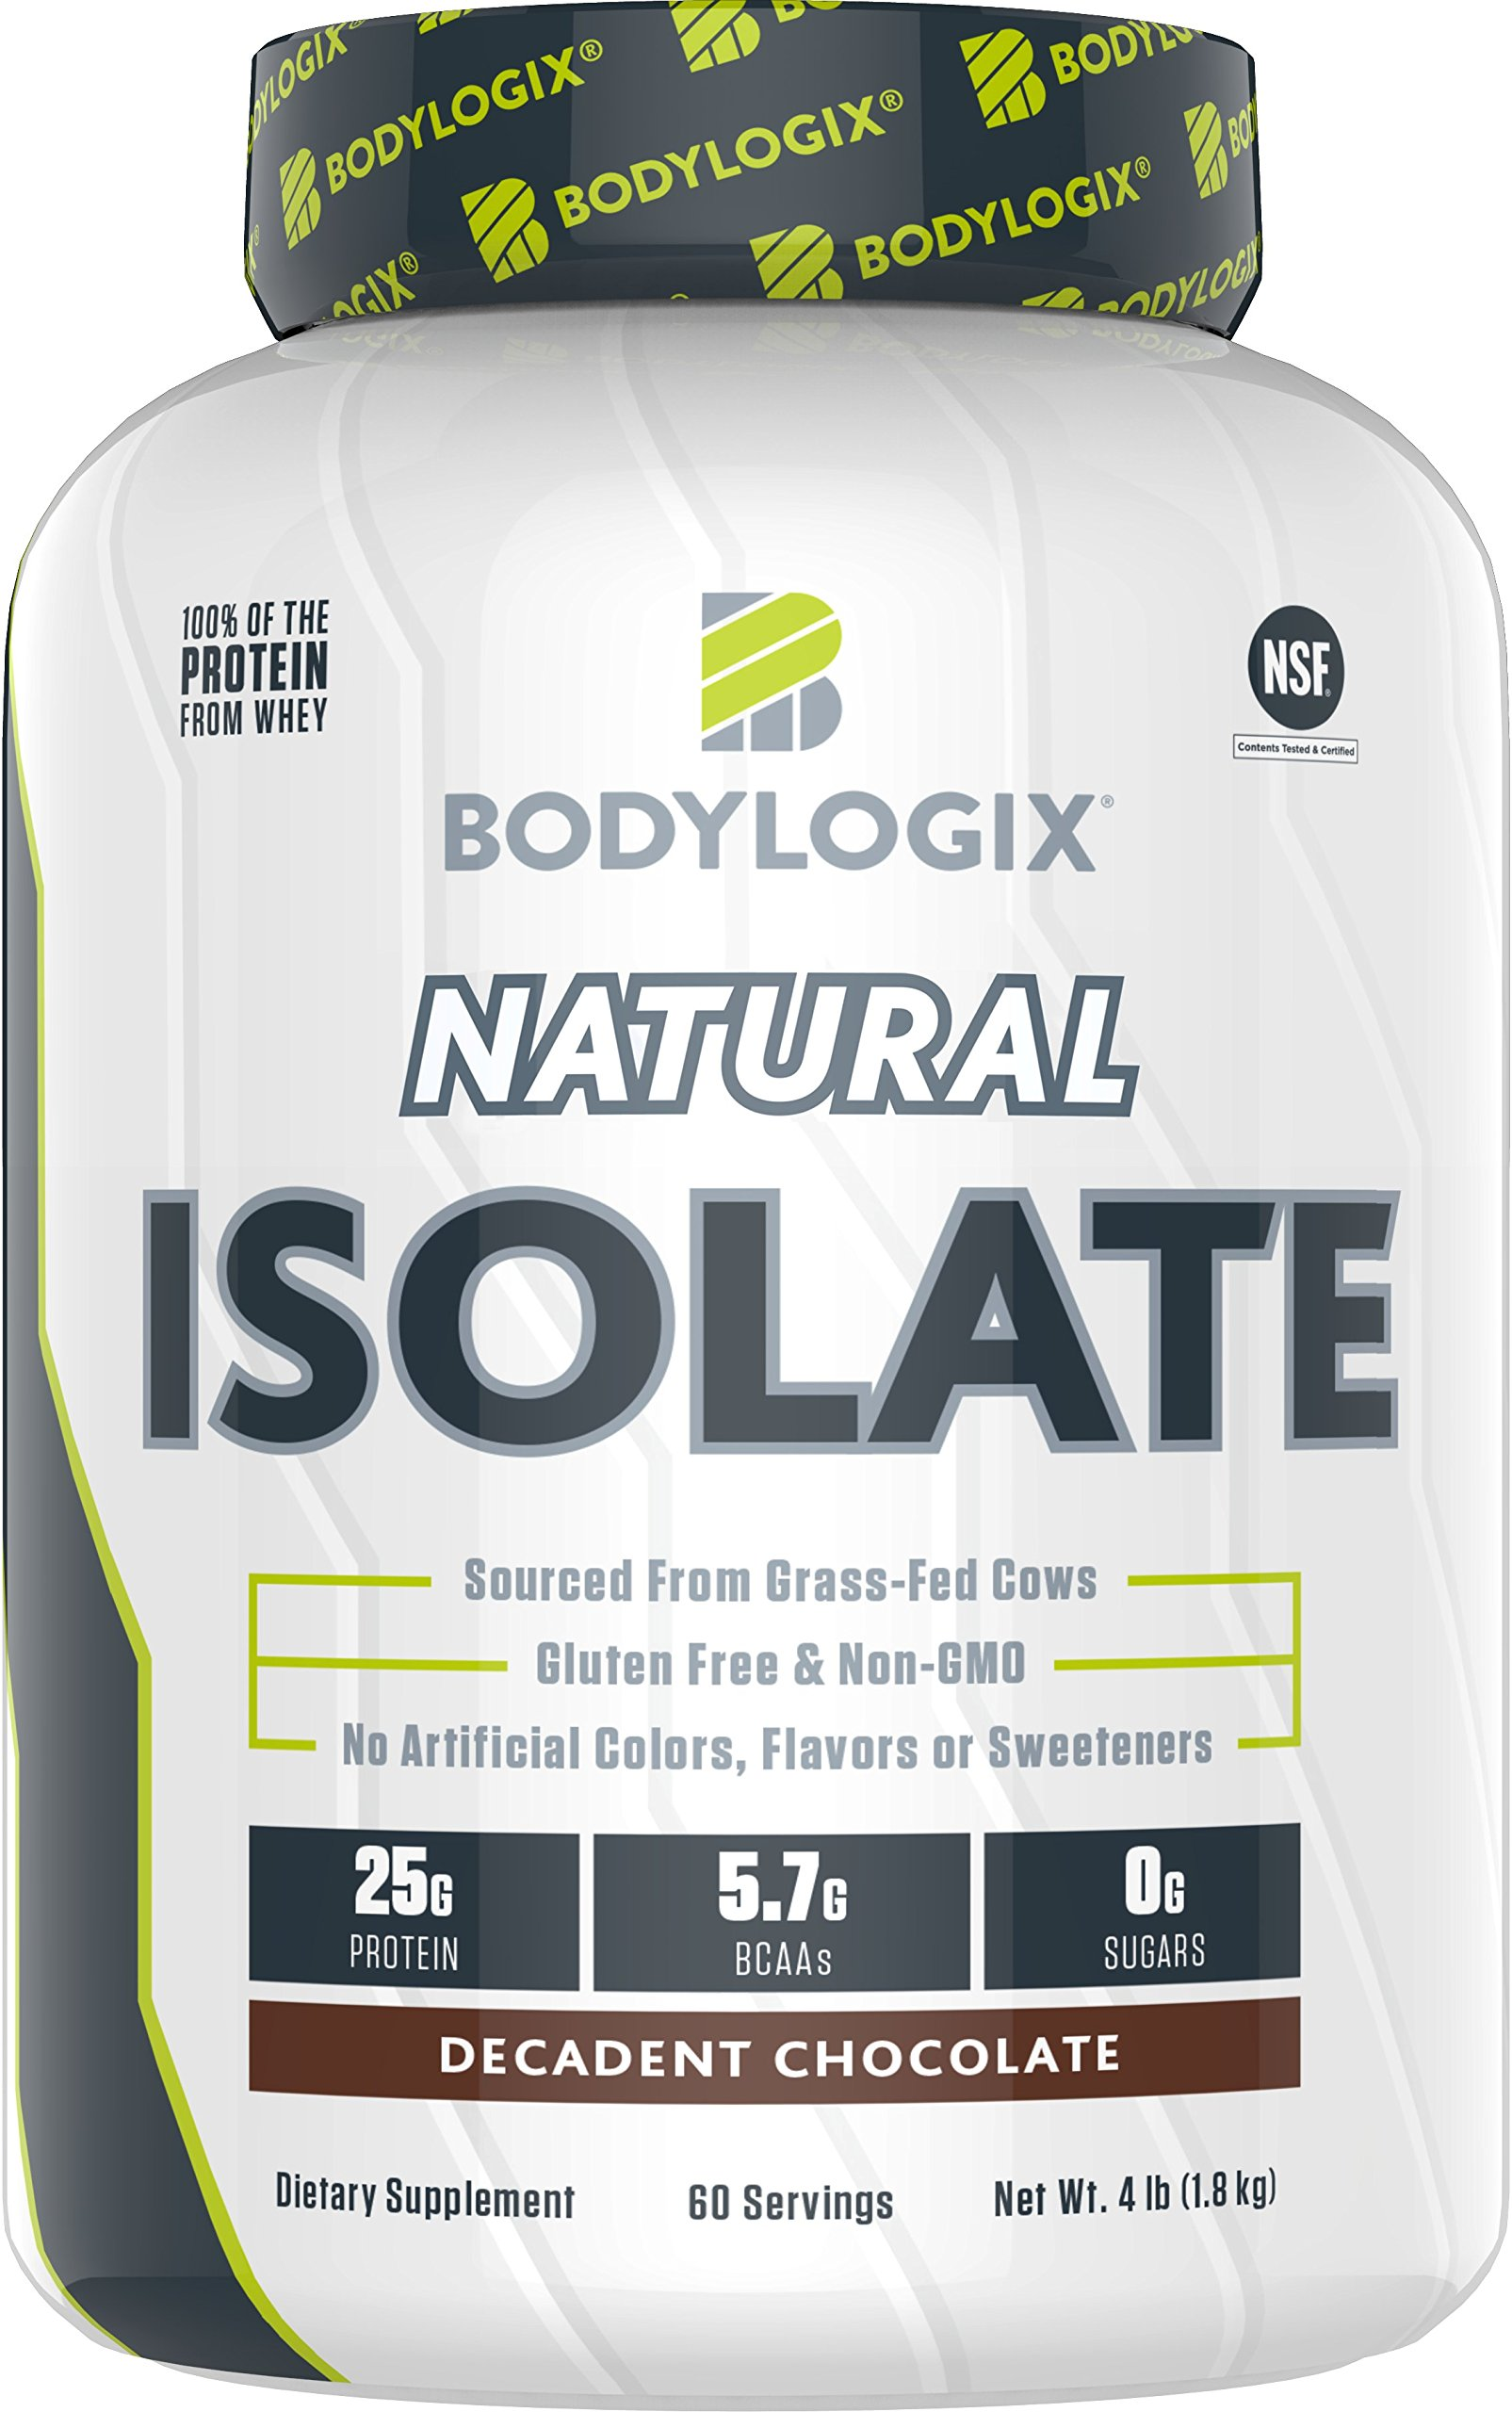 Bodylogix Natural Grass-Fed Whey Isolate Protein Powder, NSF Certified, Decadent Chocolate, 4 Pound